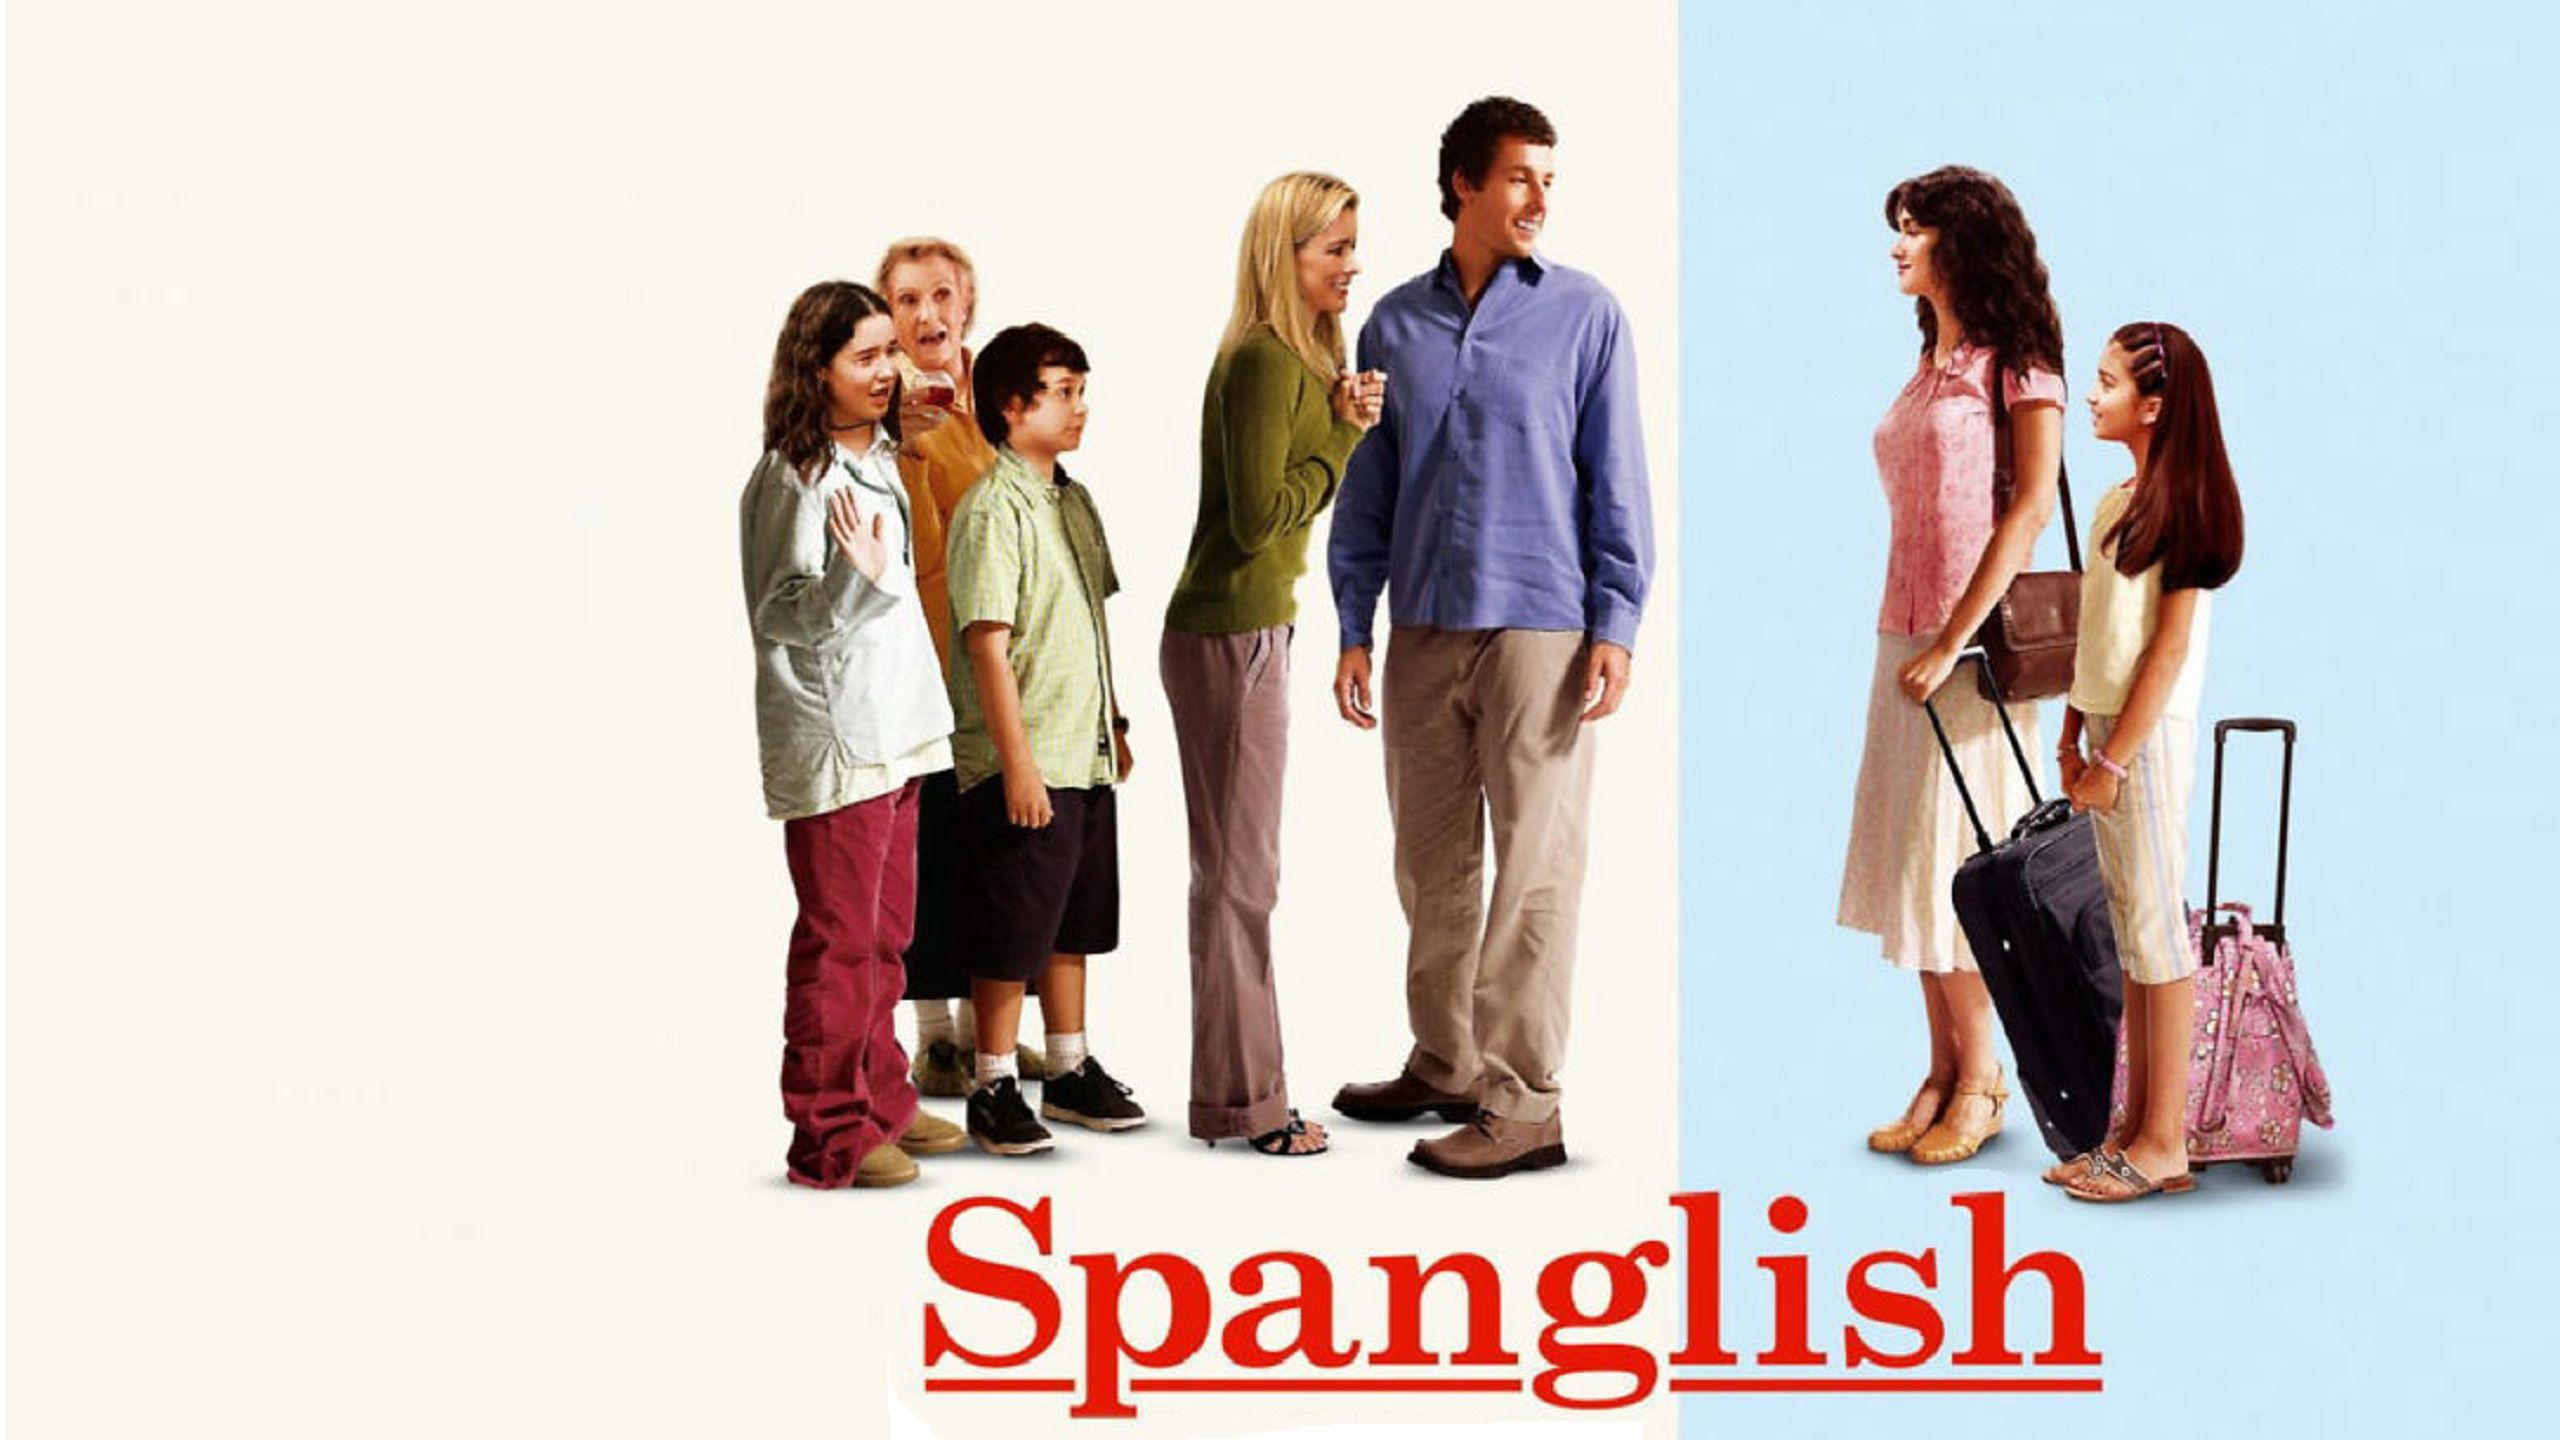 Spanglish (2004) wallpaper poster